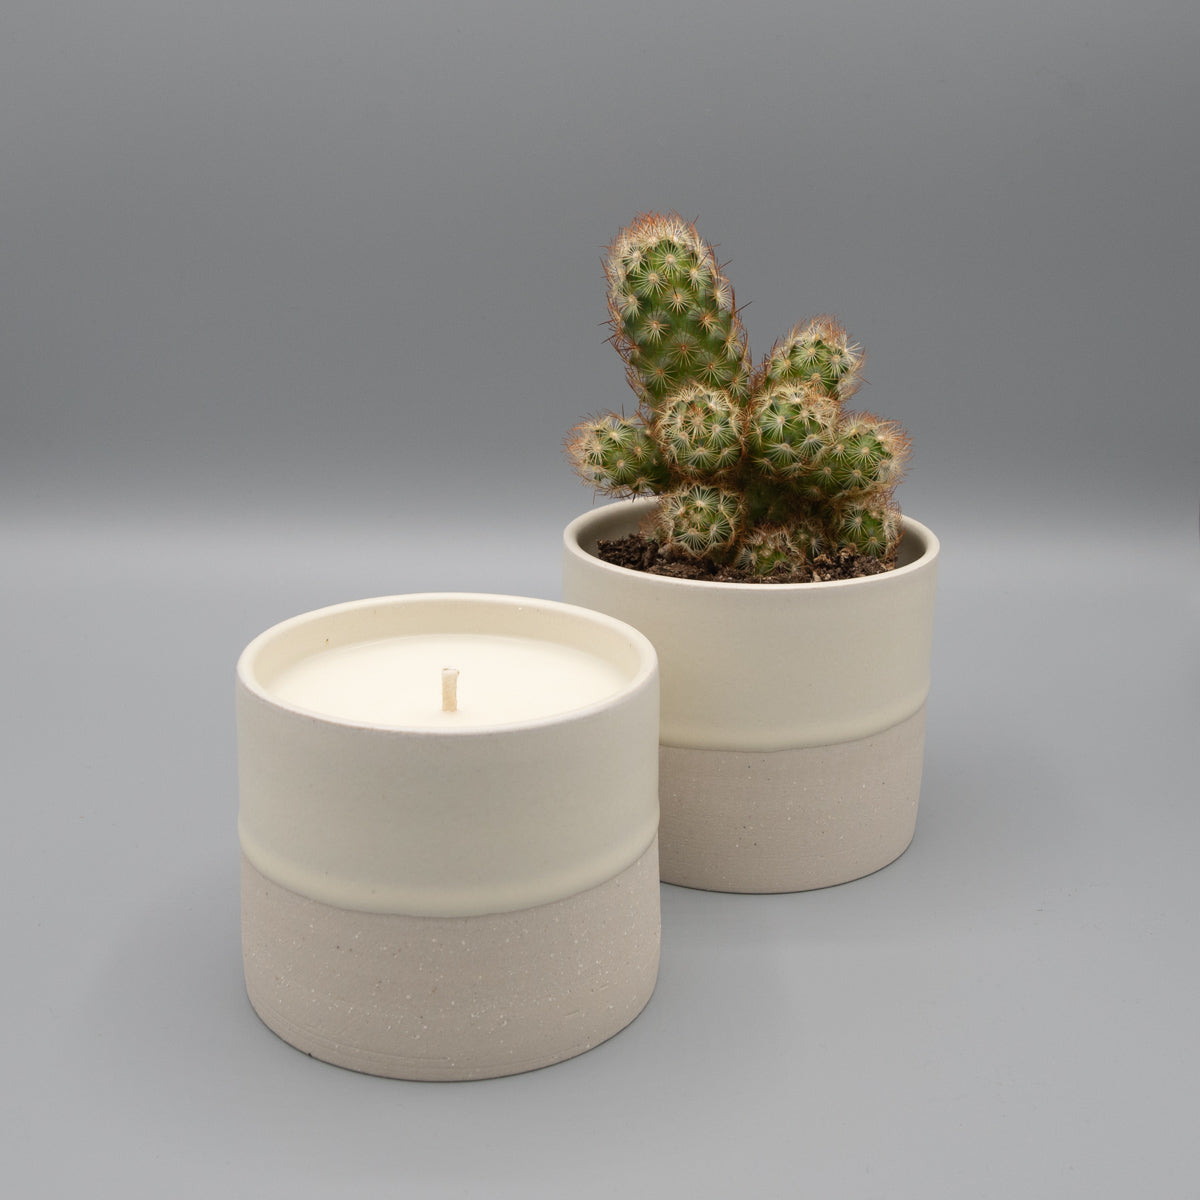 Small white ceramic candle re-used as a planter with a small cactus.